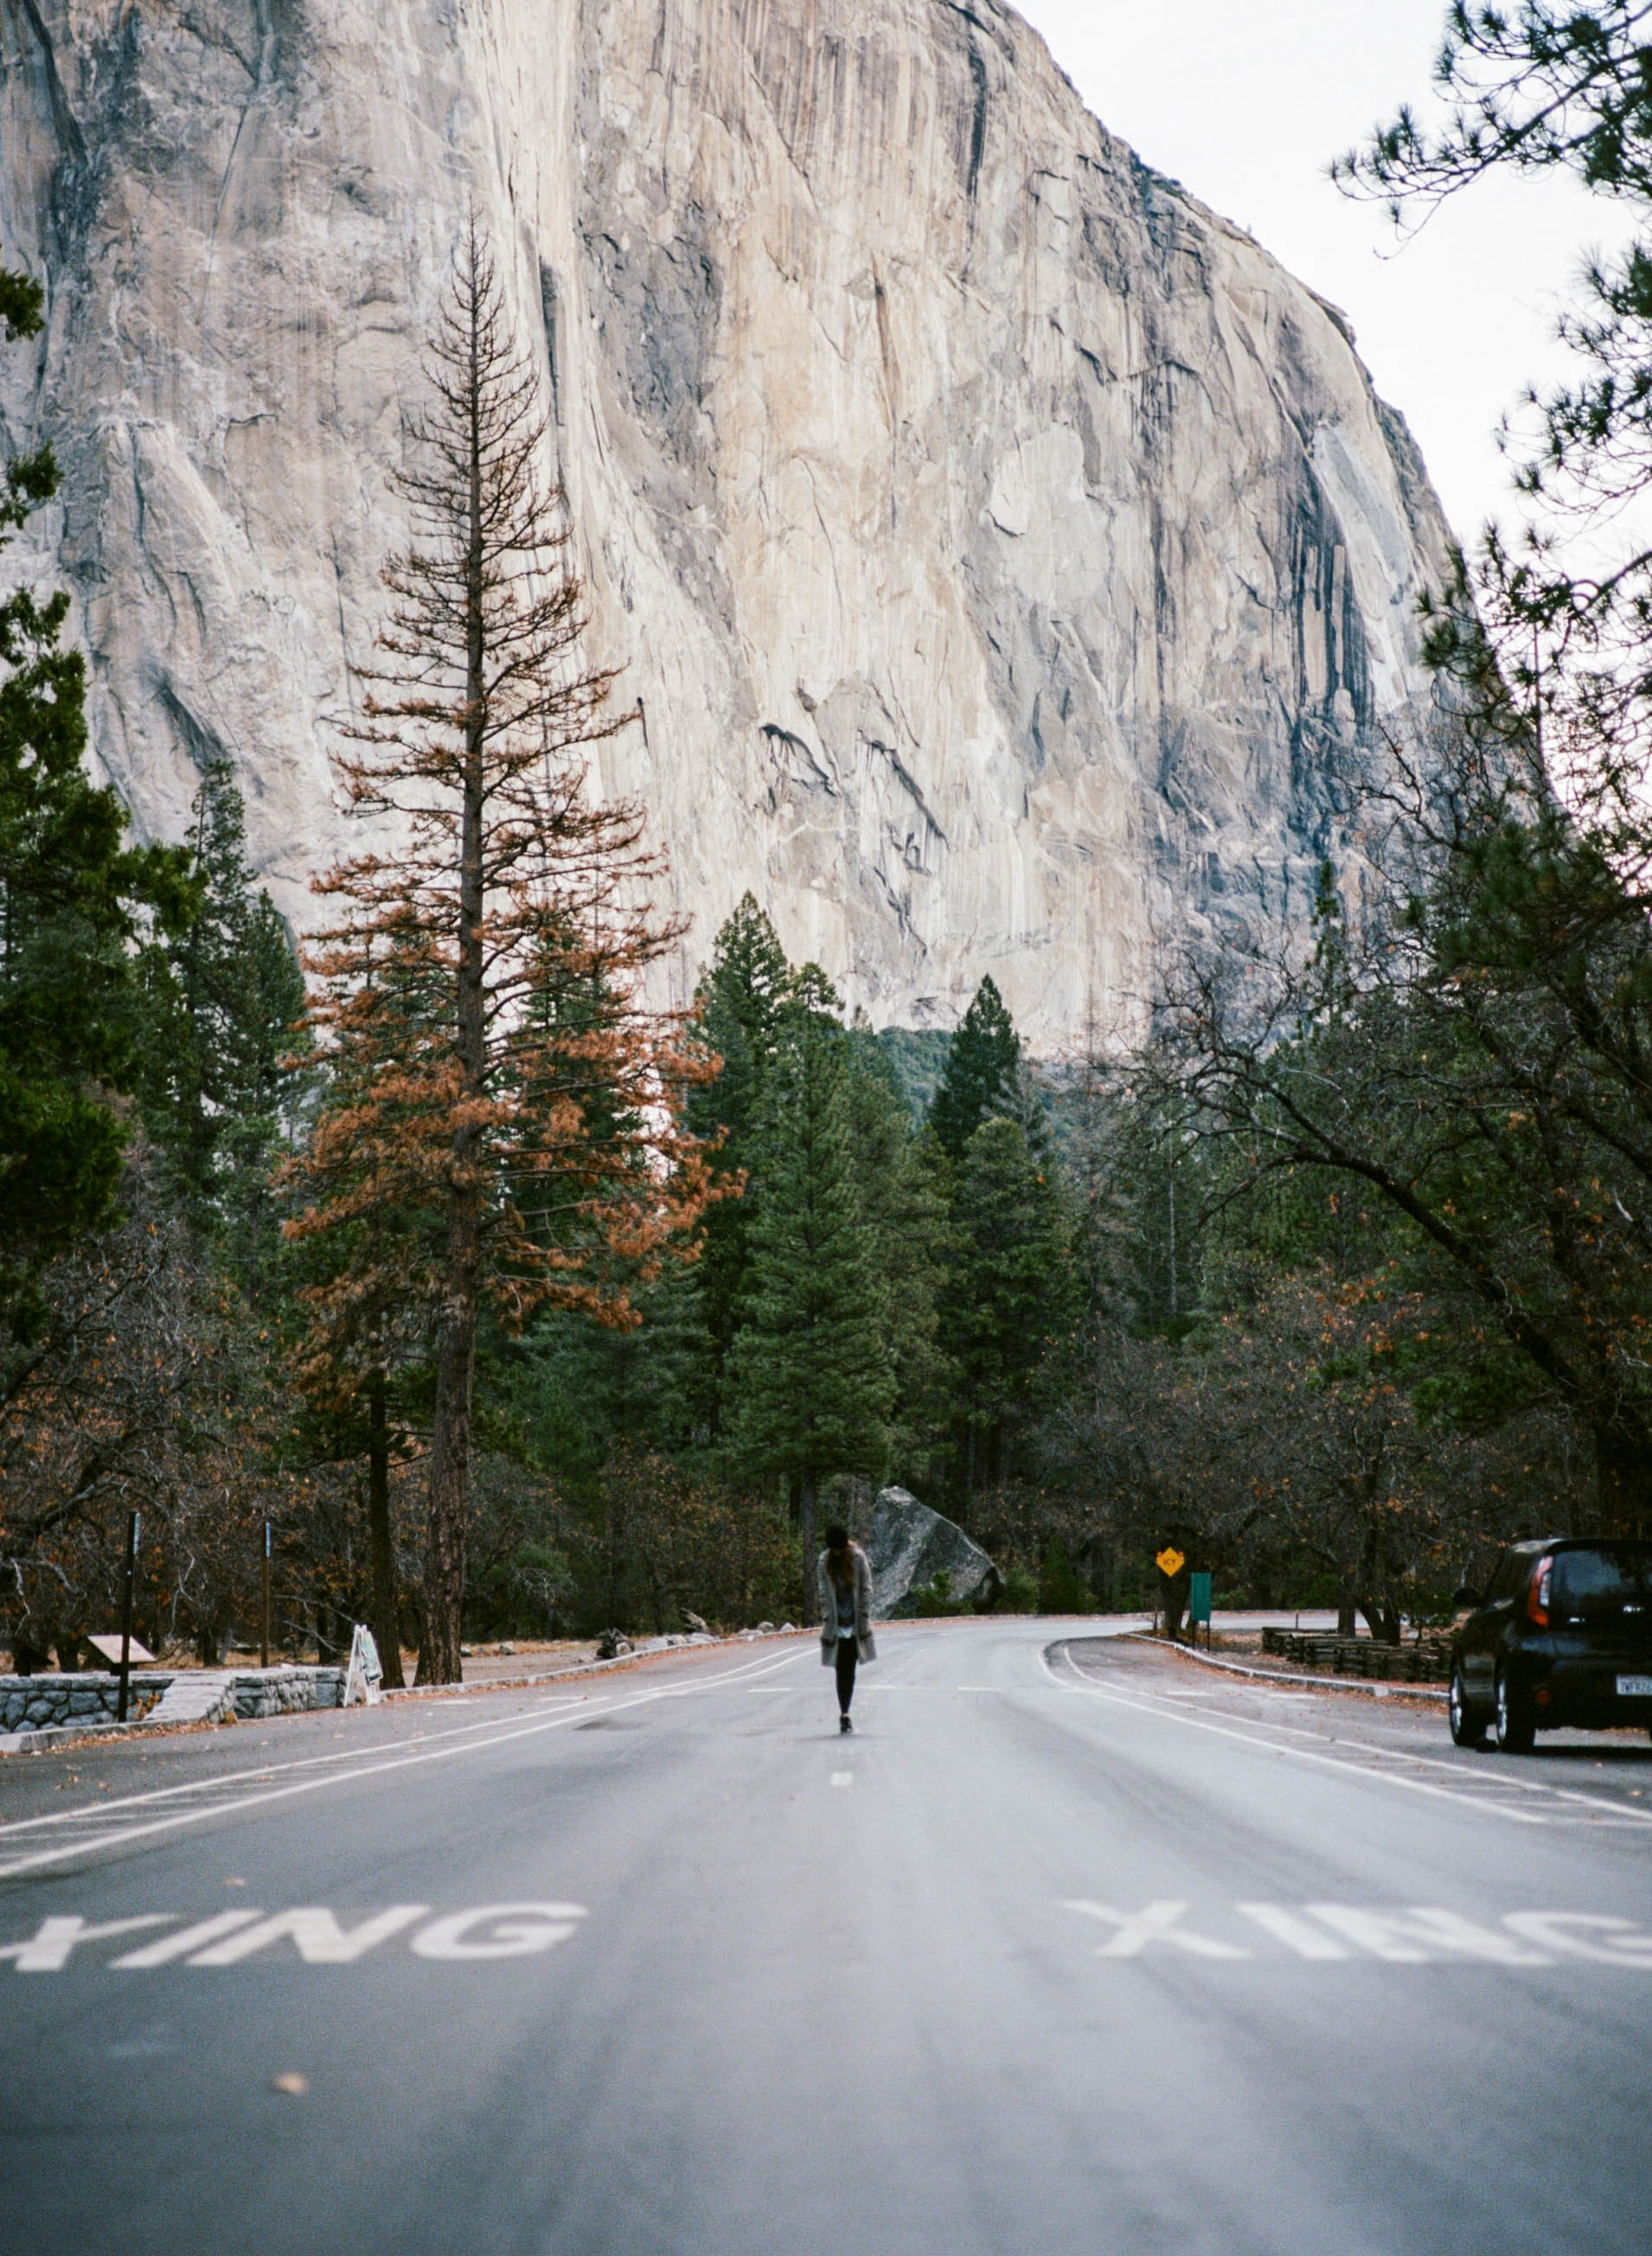 person walking on road between trees and mountain in distance